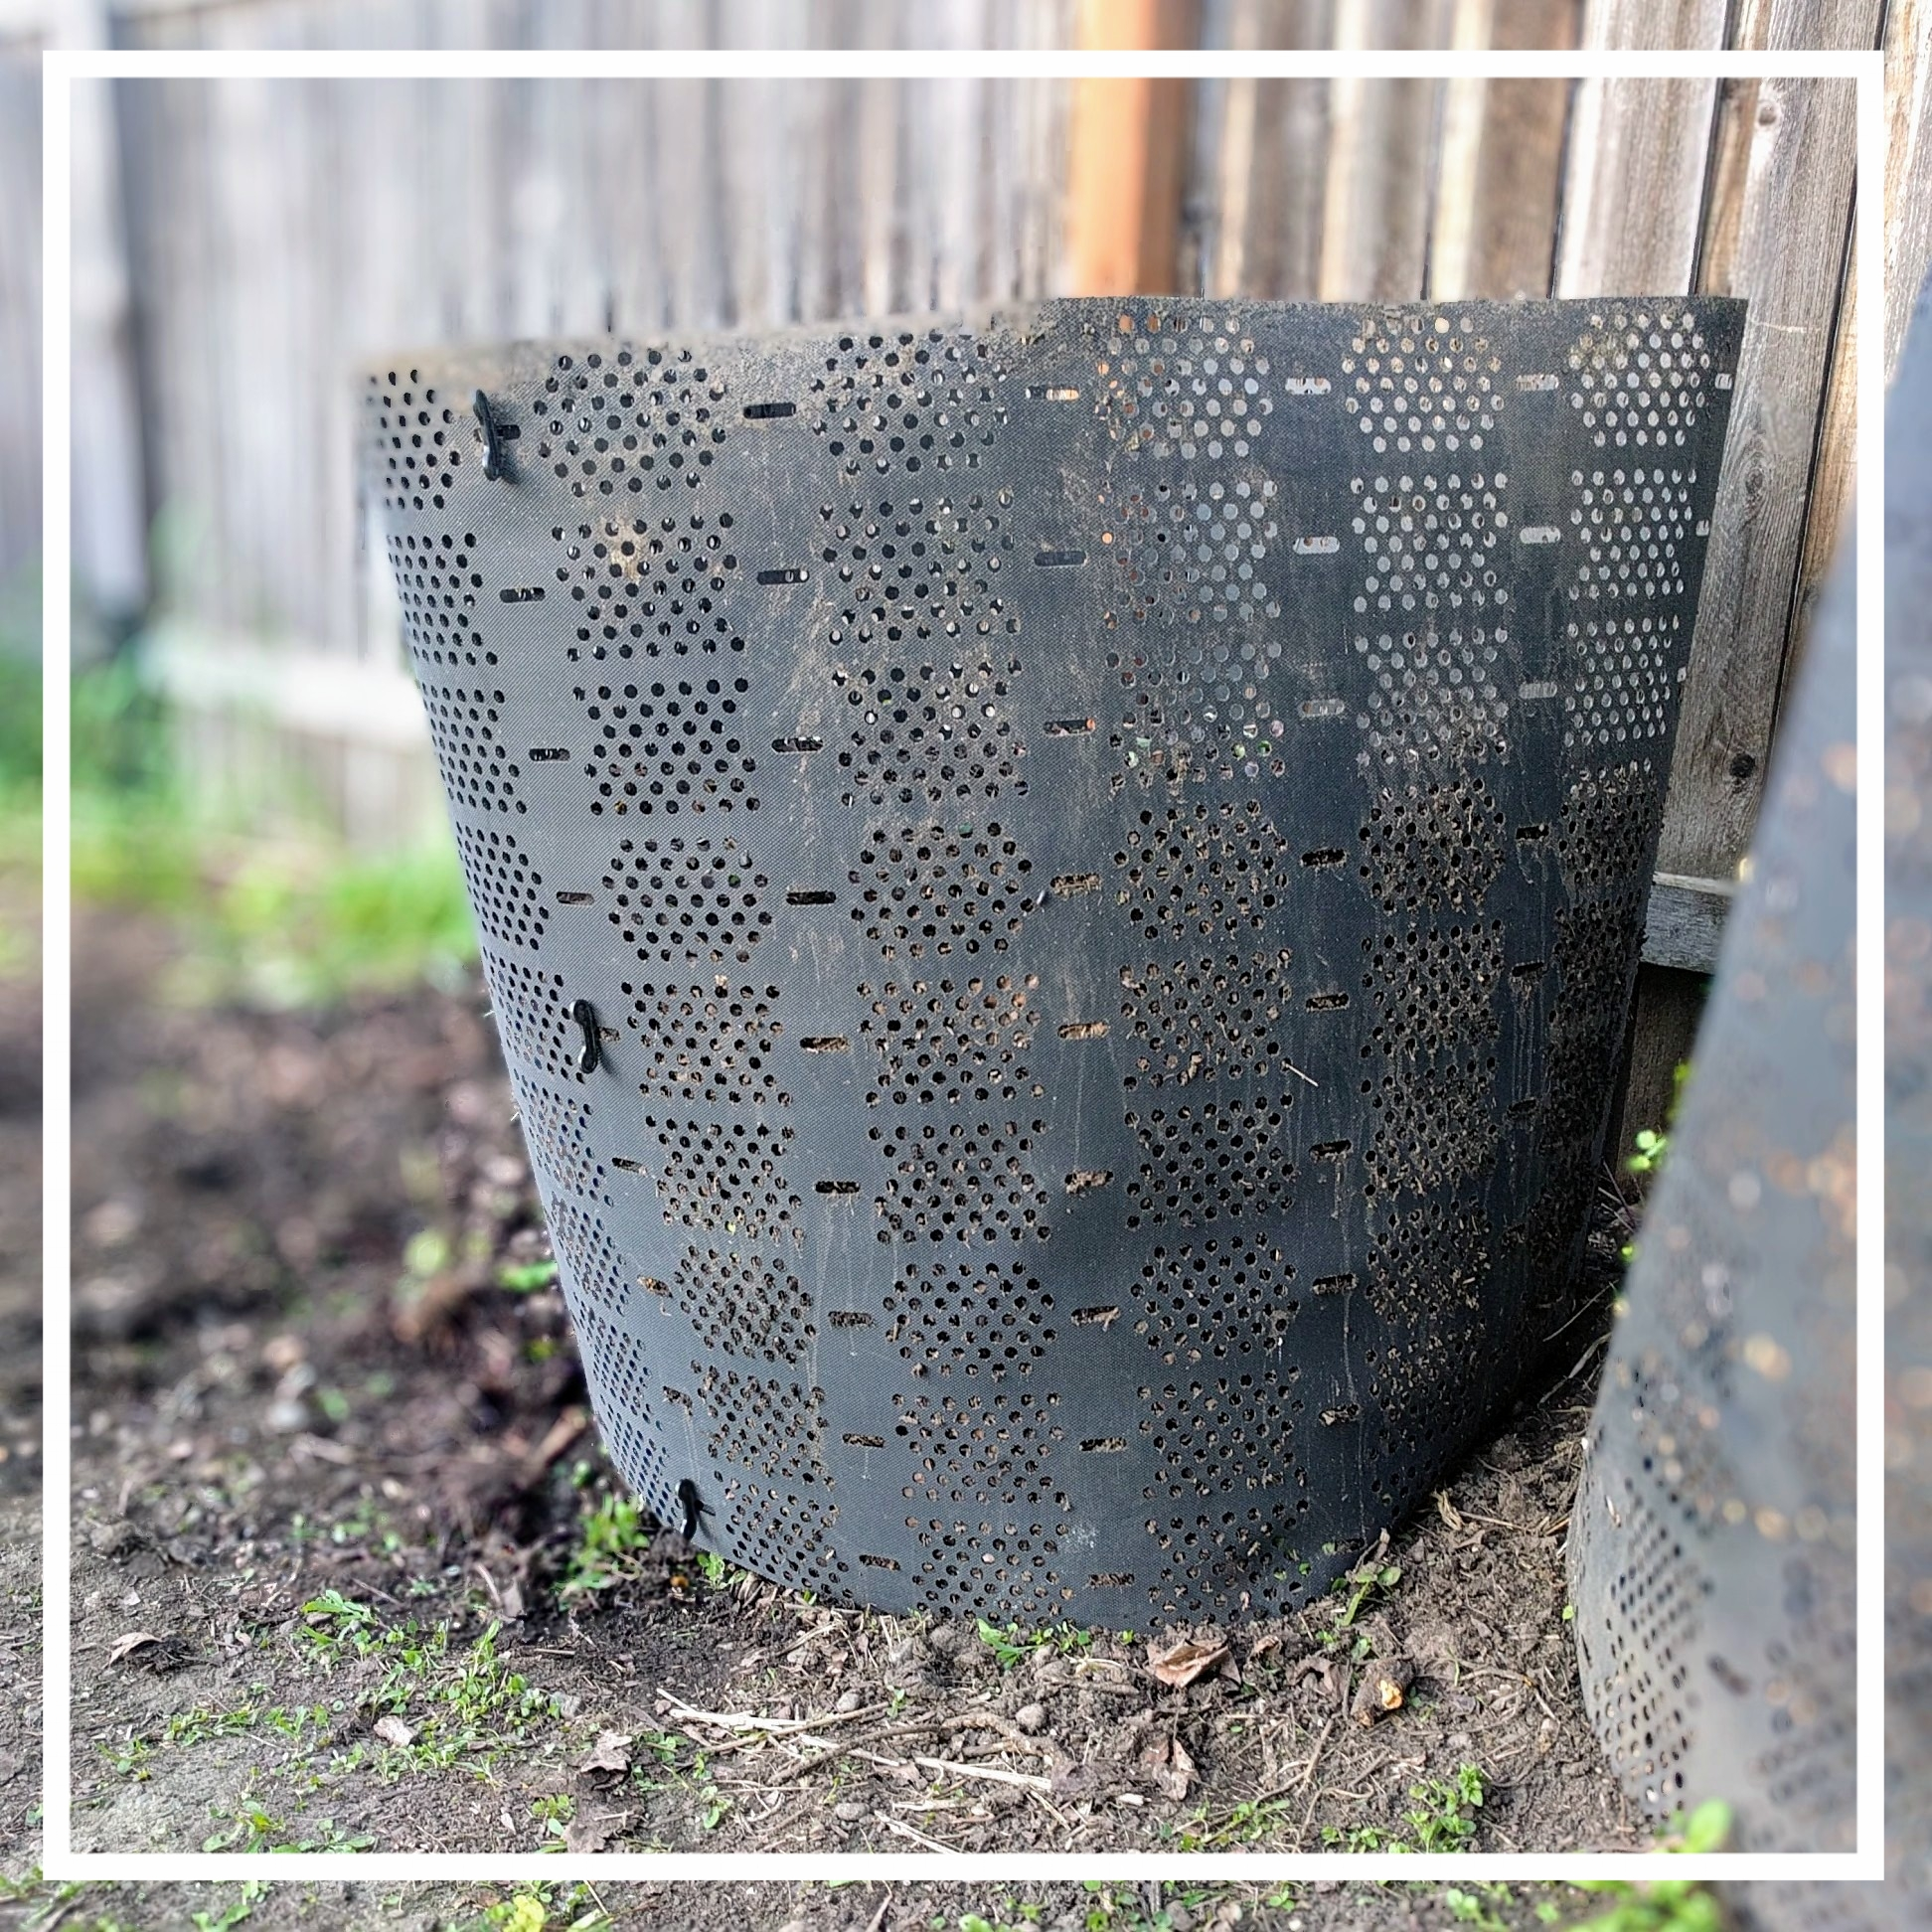 This plastic mesh bin can be unclipped and repositioned to make it easy to turn the compost pile.